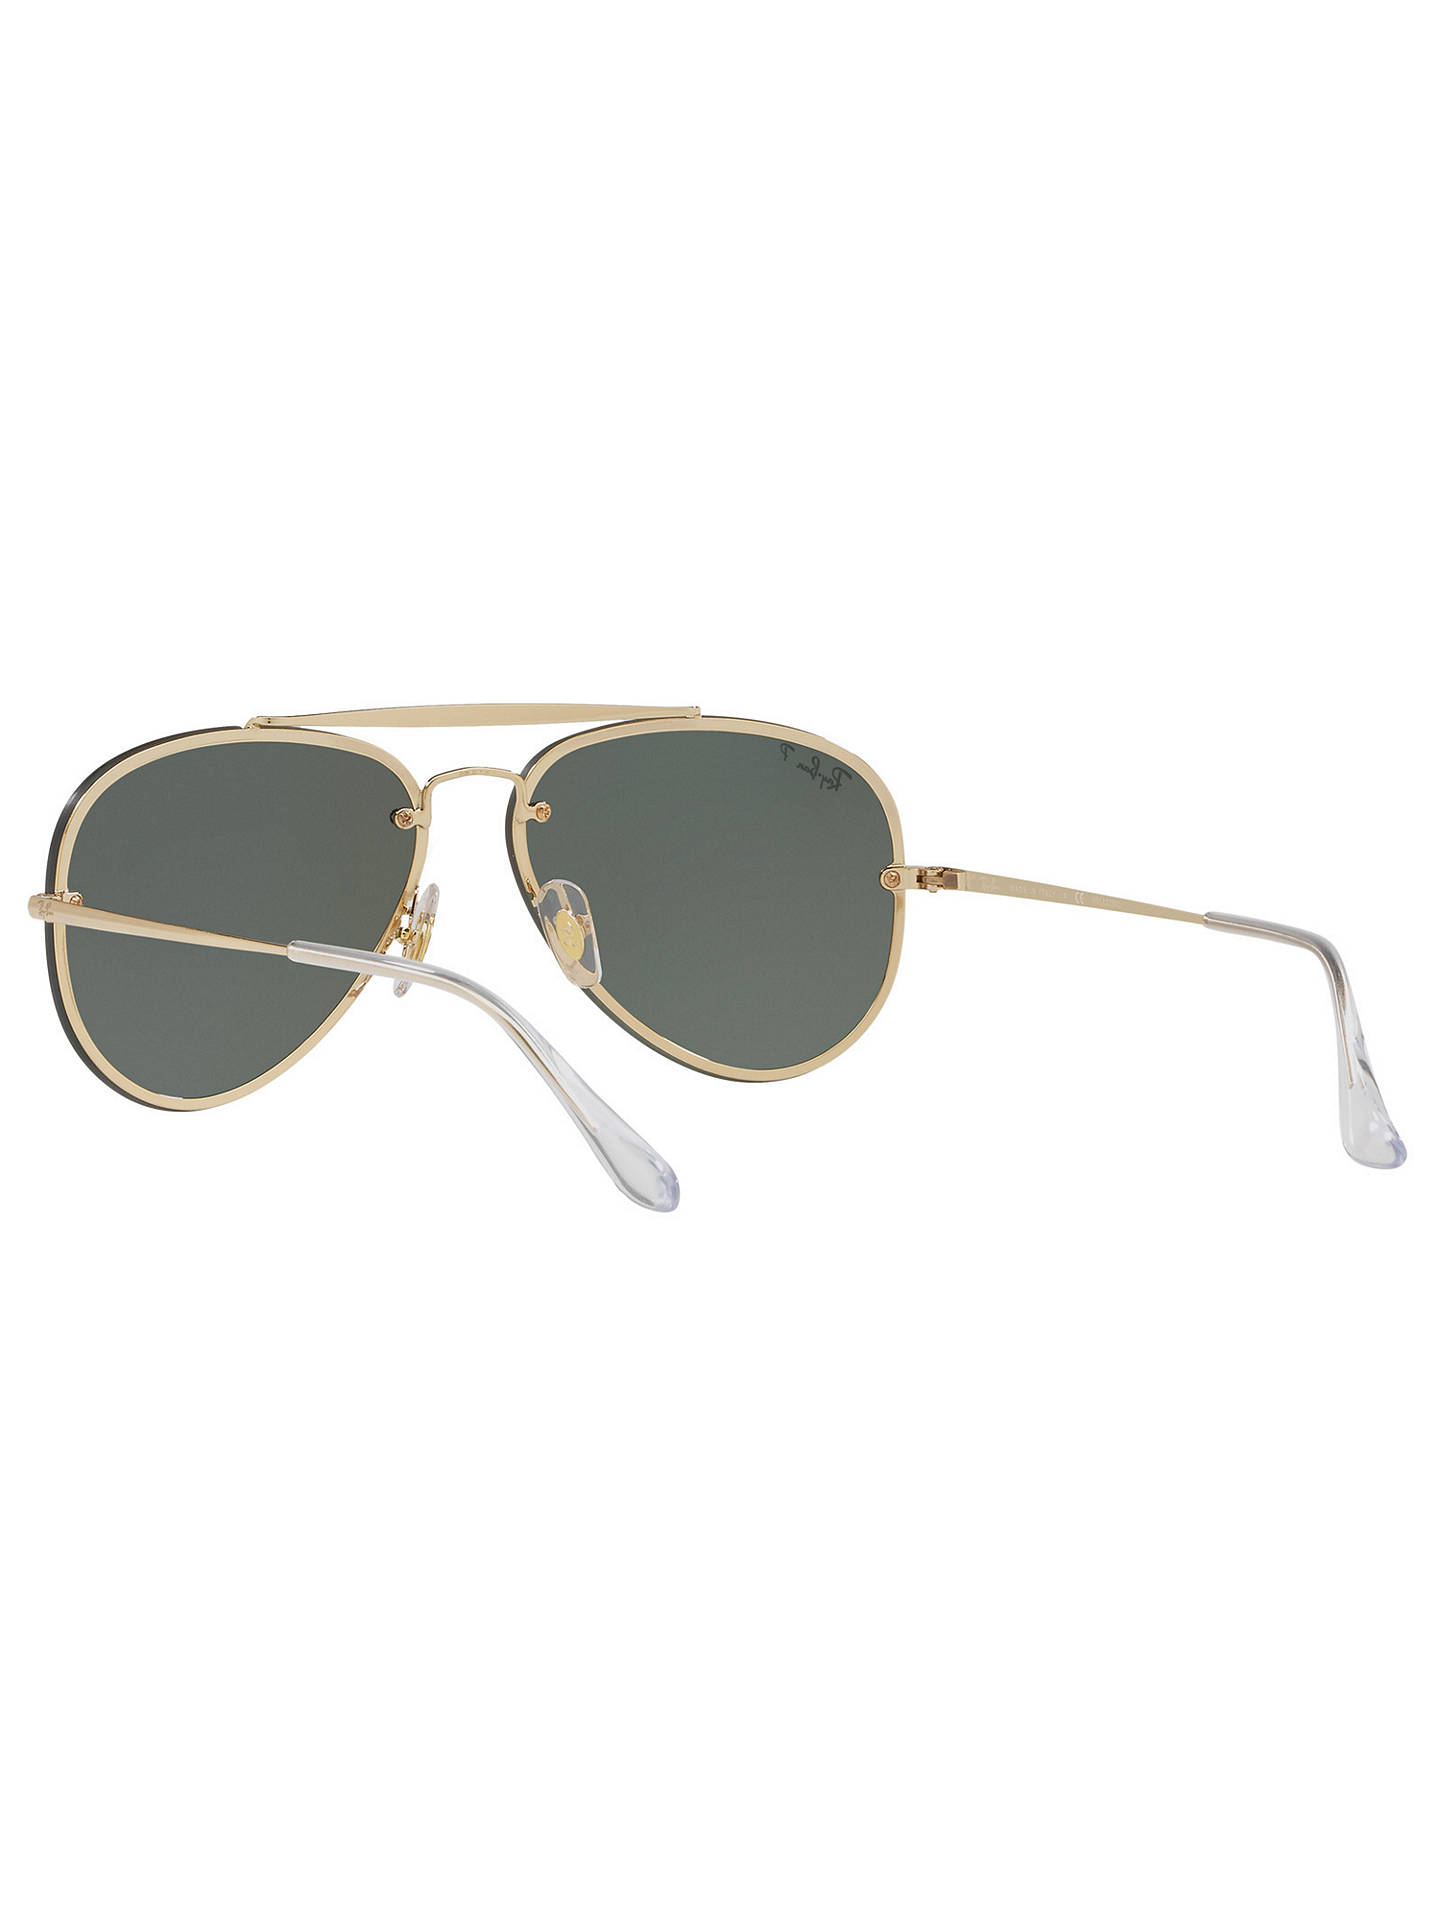 BuyRay-Ban RB3584N Blaze Polarised Aviator Sunglasses, Gold/Green Online at johnlewis.com